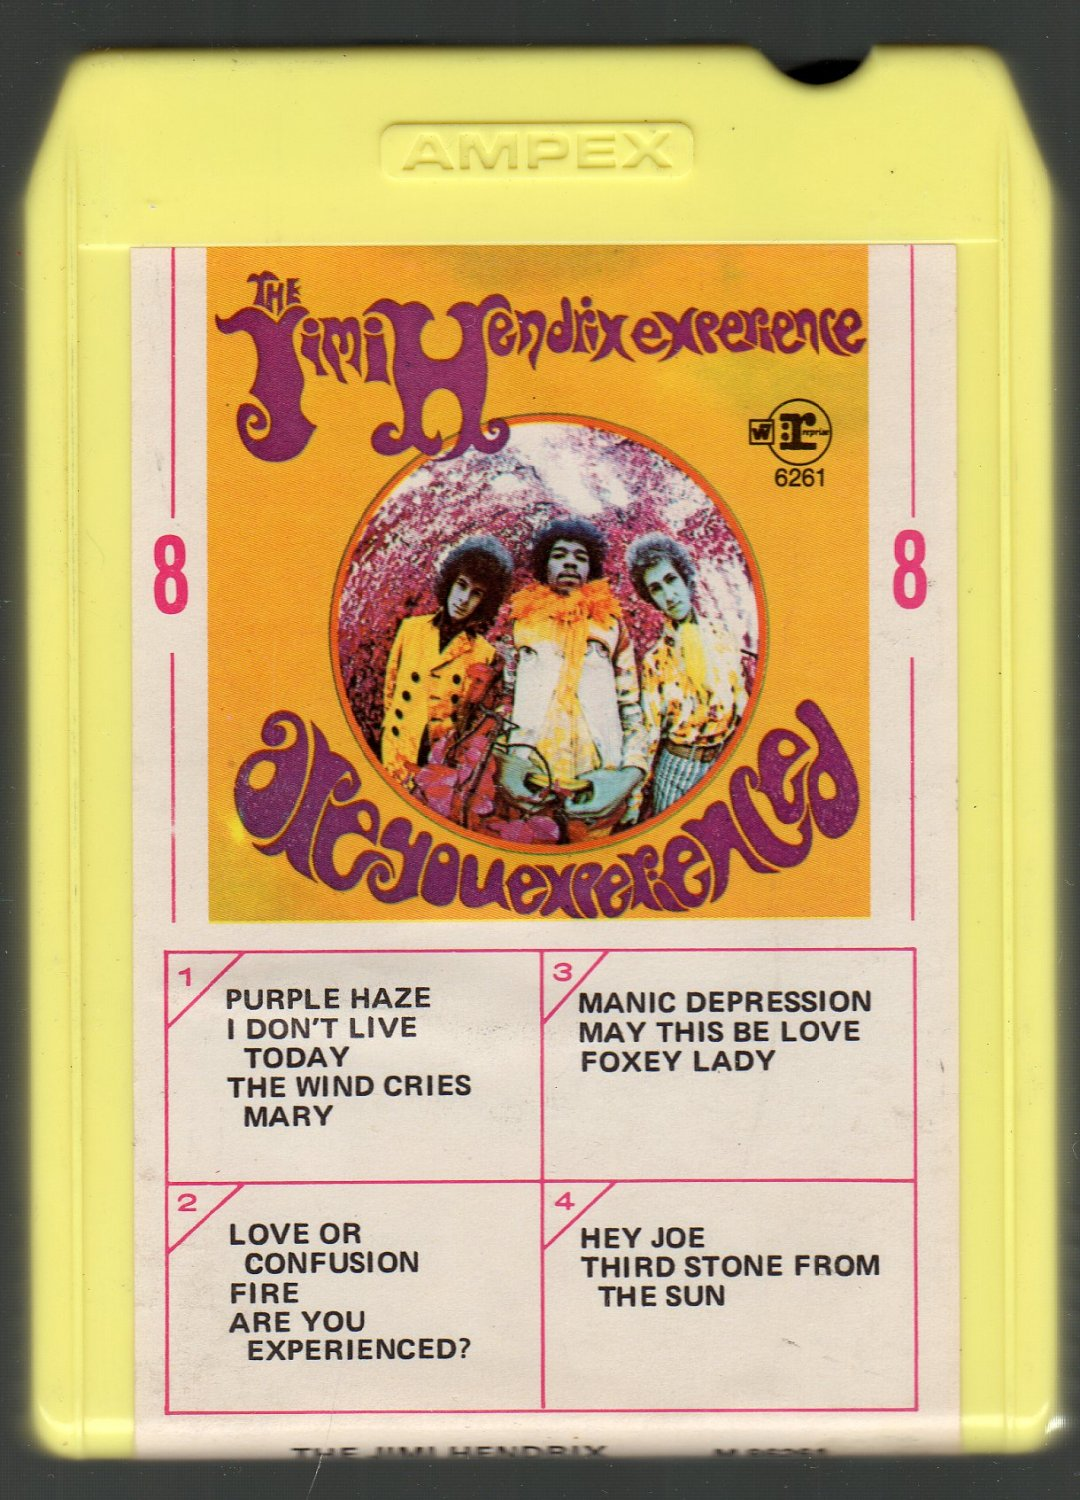 The Jimi Hendrix Experience - Are You Experienced 1967  SOLD Debut Reprise Ampex 8-track tape